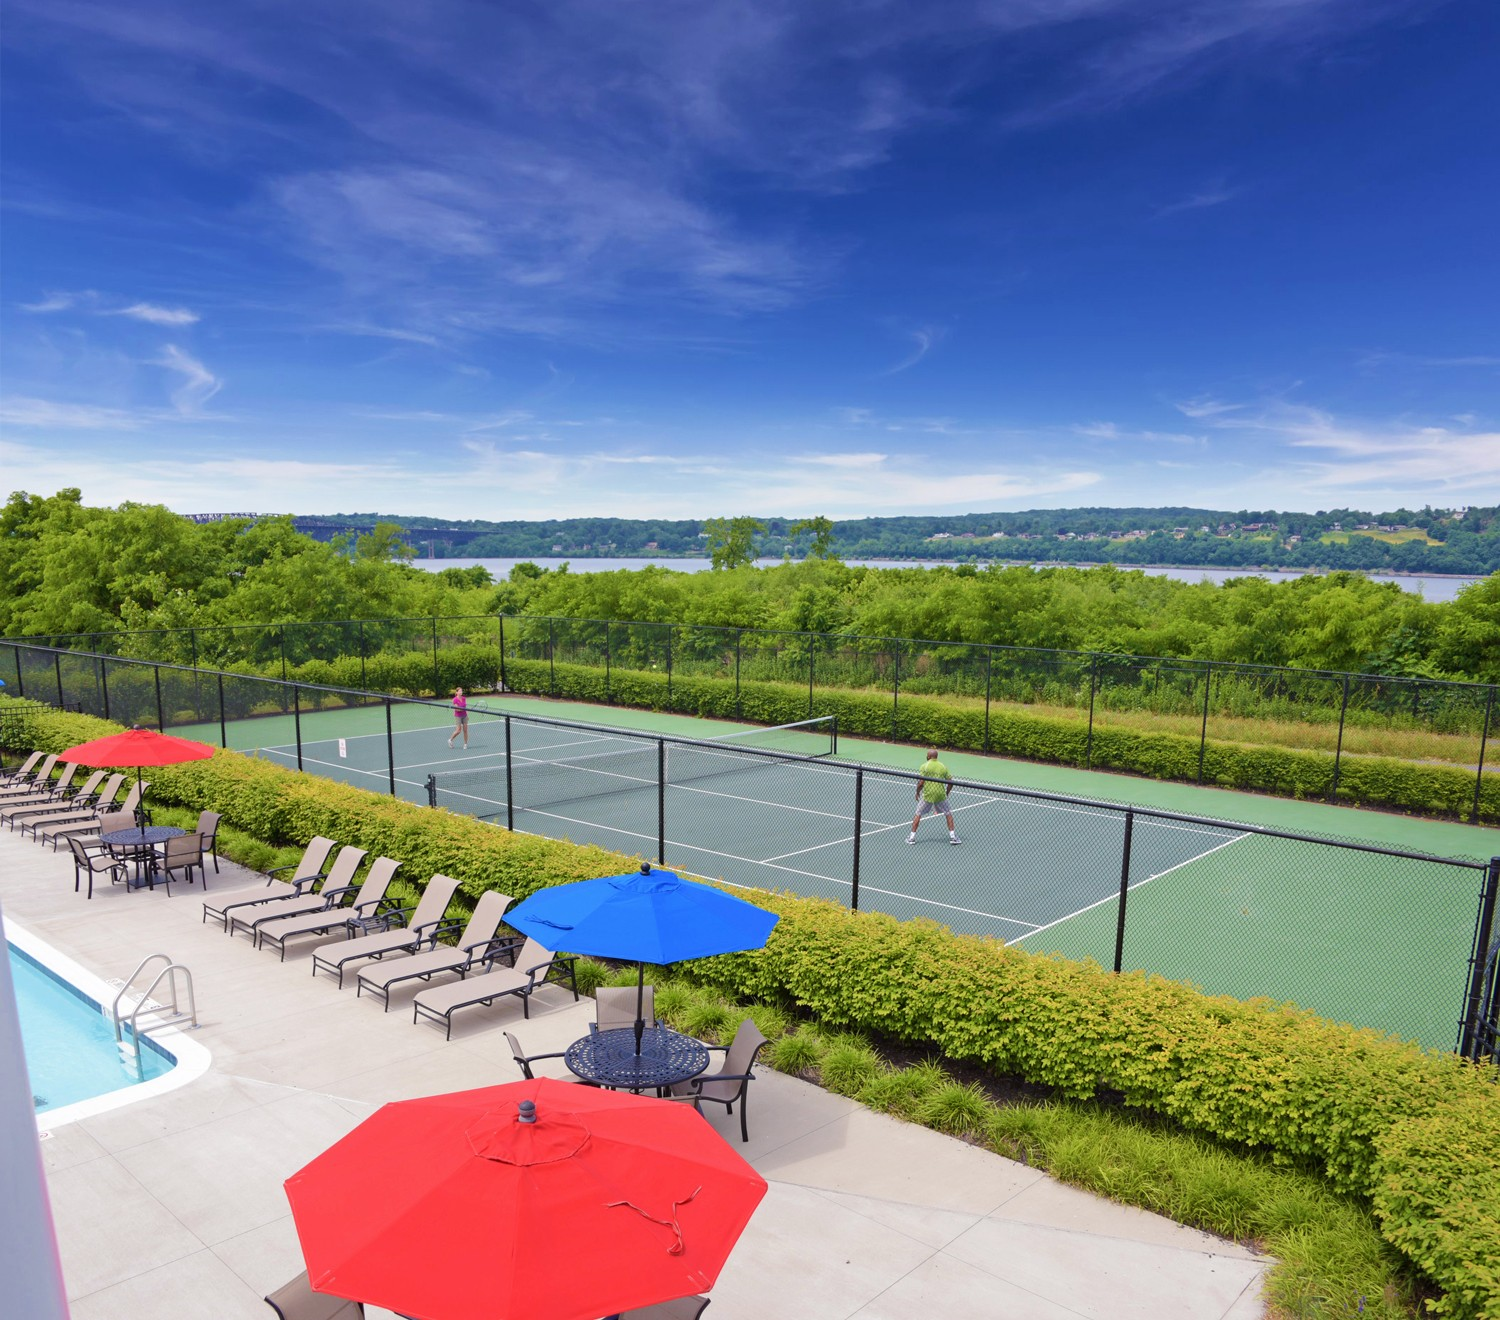 5 Unforgettable Hudson River Views In The Mid-Hudson